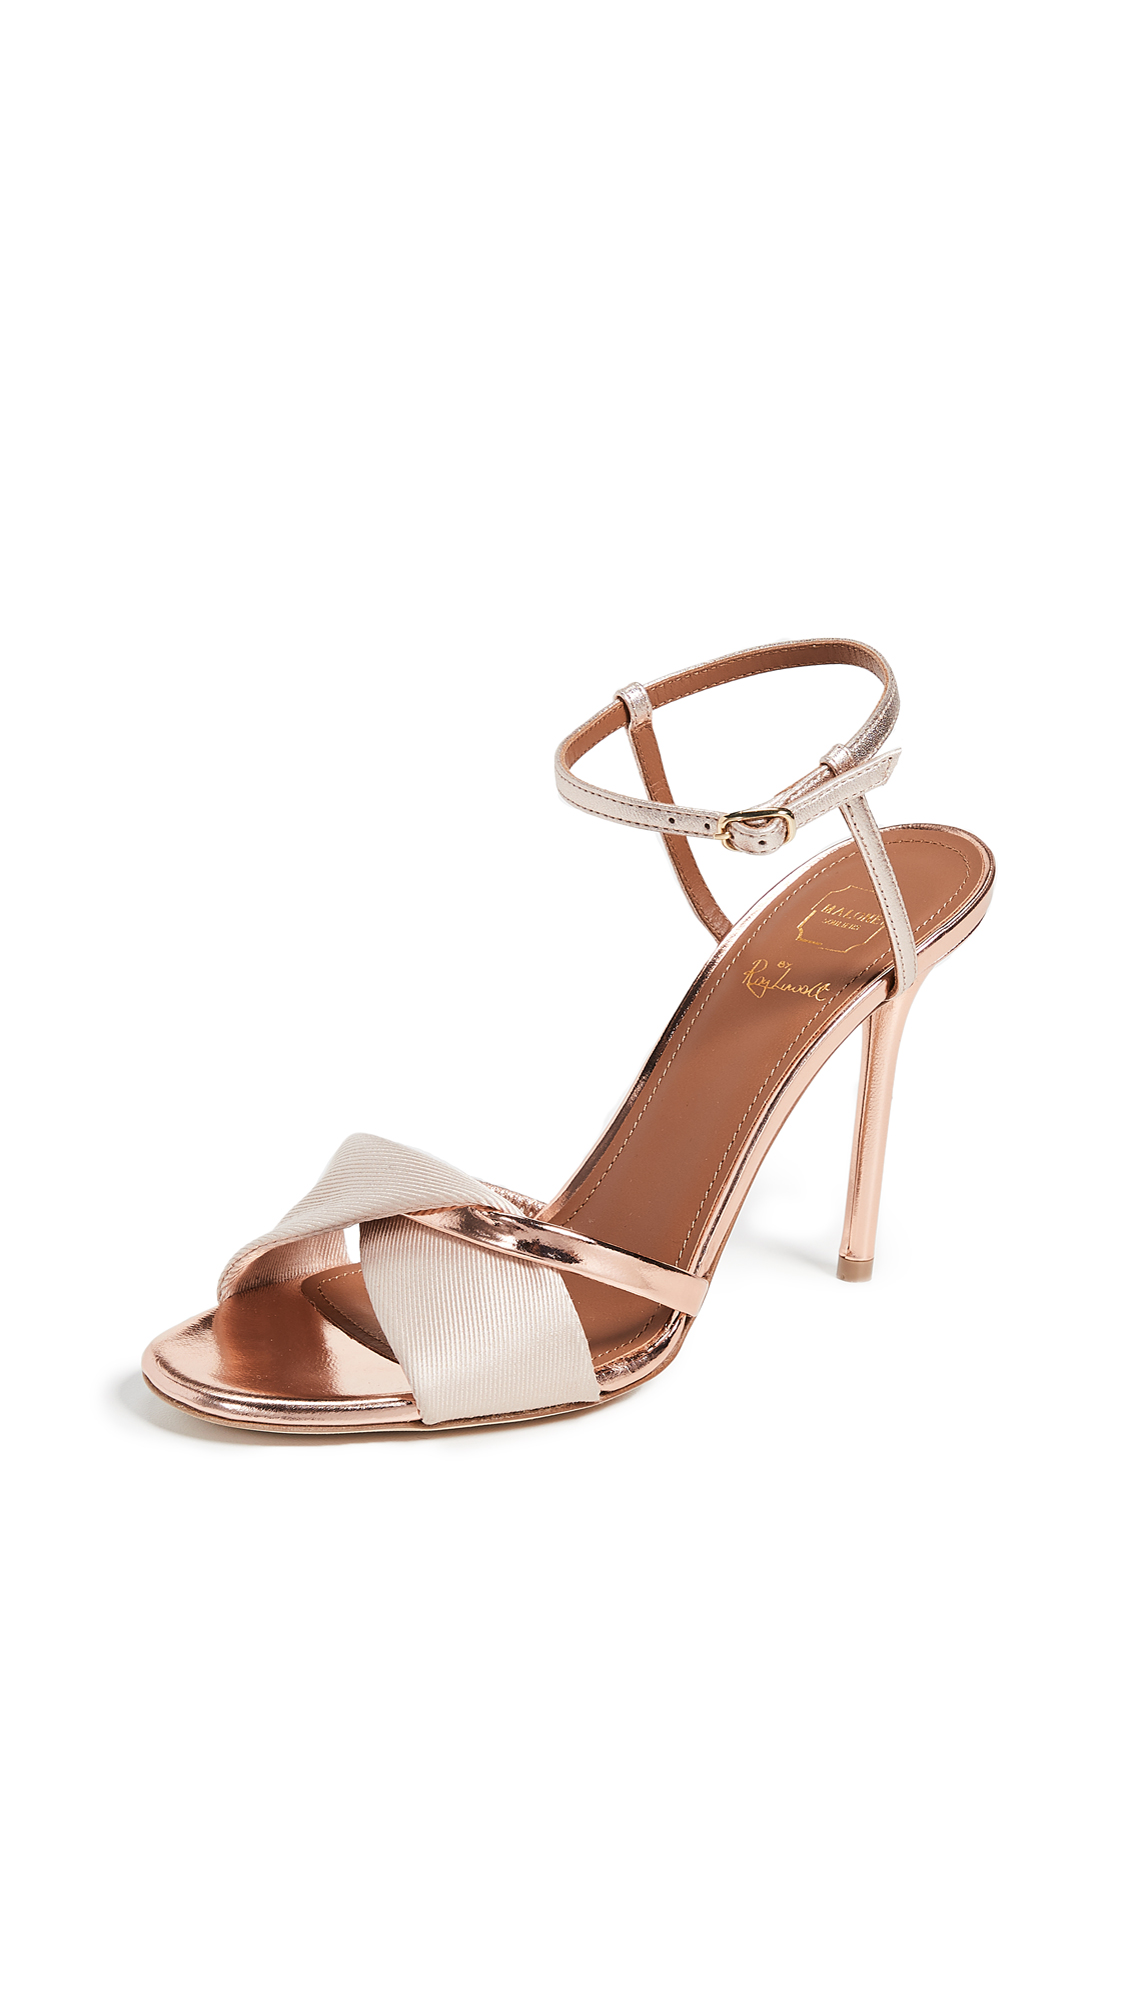 Malone Souliers Terry 100 Sandals - Nude/Rose Gold